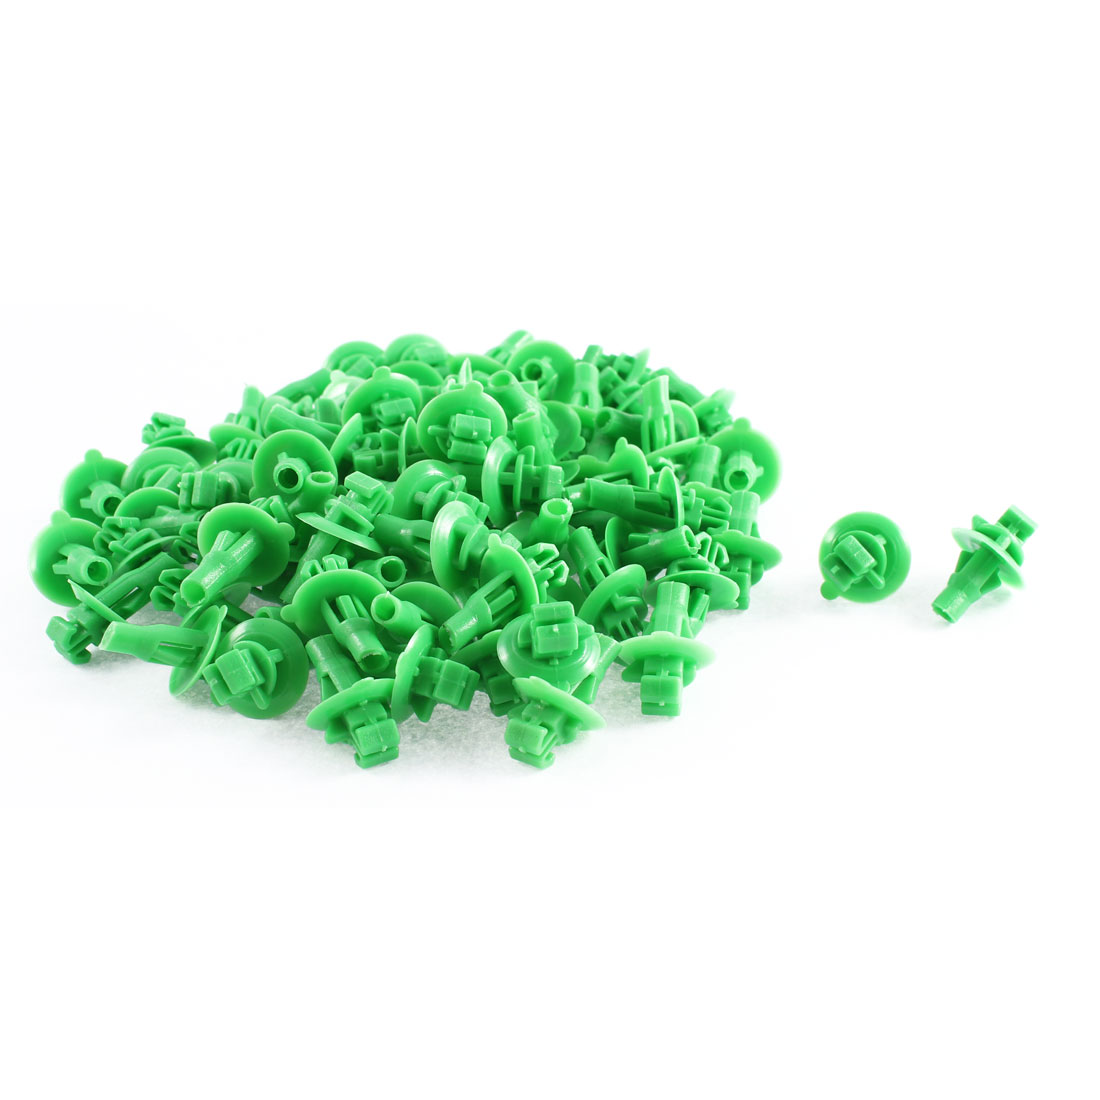 Unique Bargains 80 Pcs Green Plastic Splash Defender Interior Fastener Mat Clips for